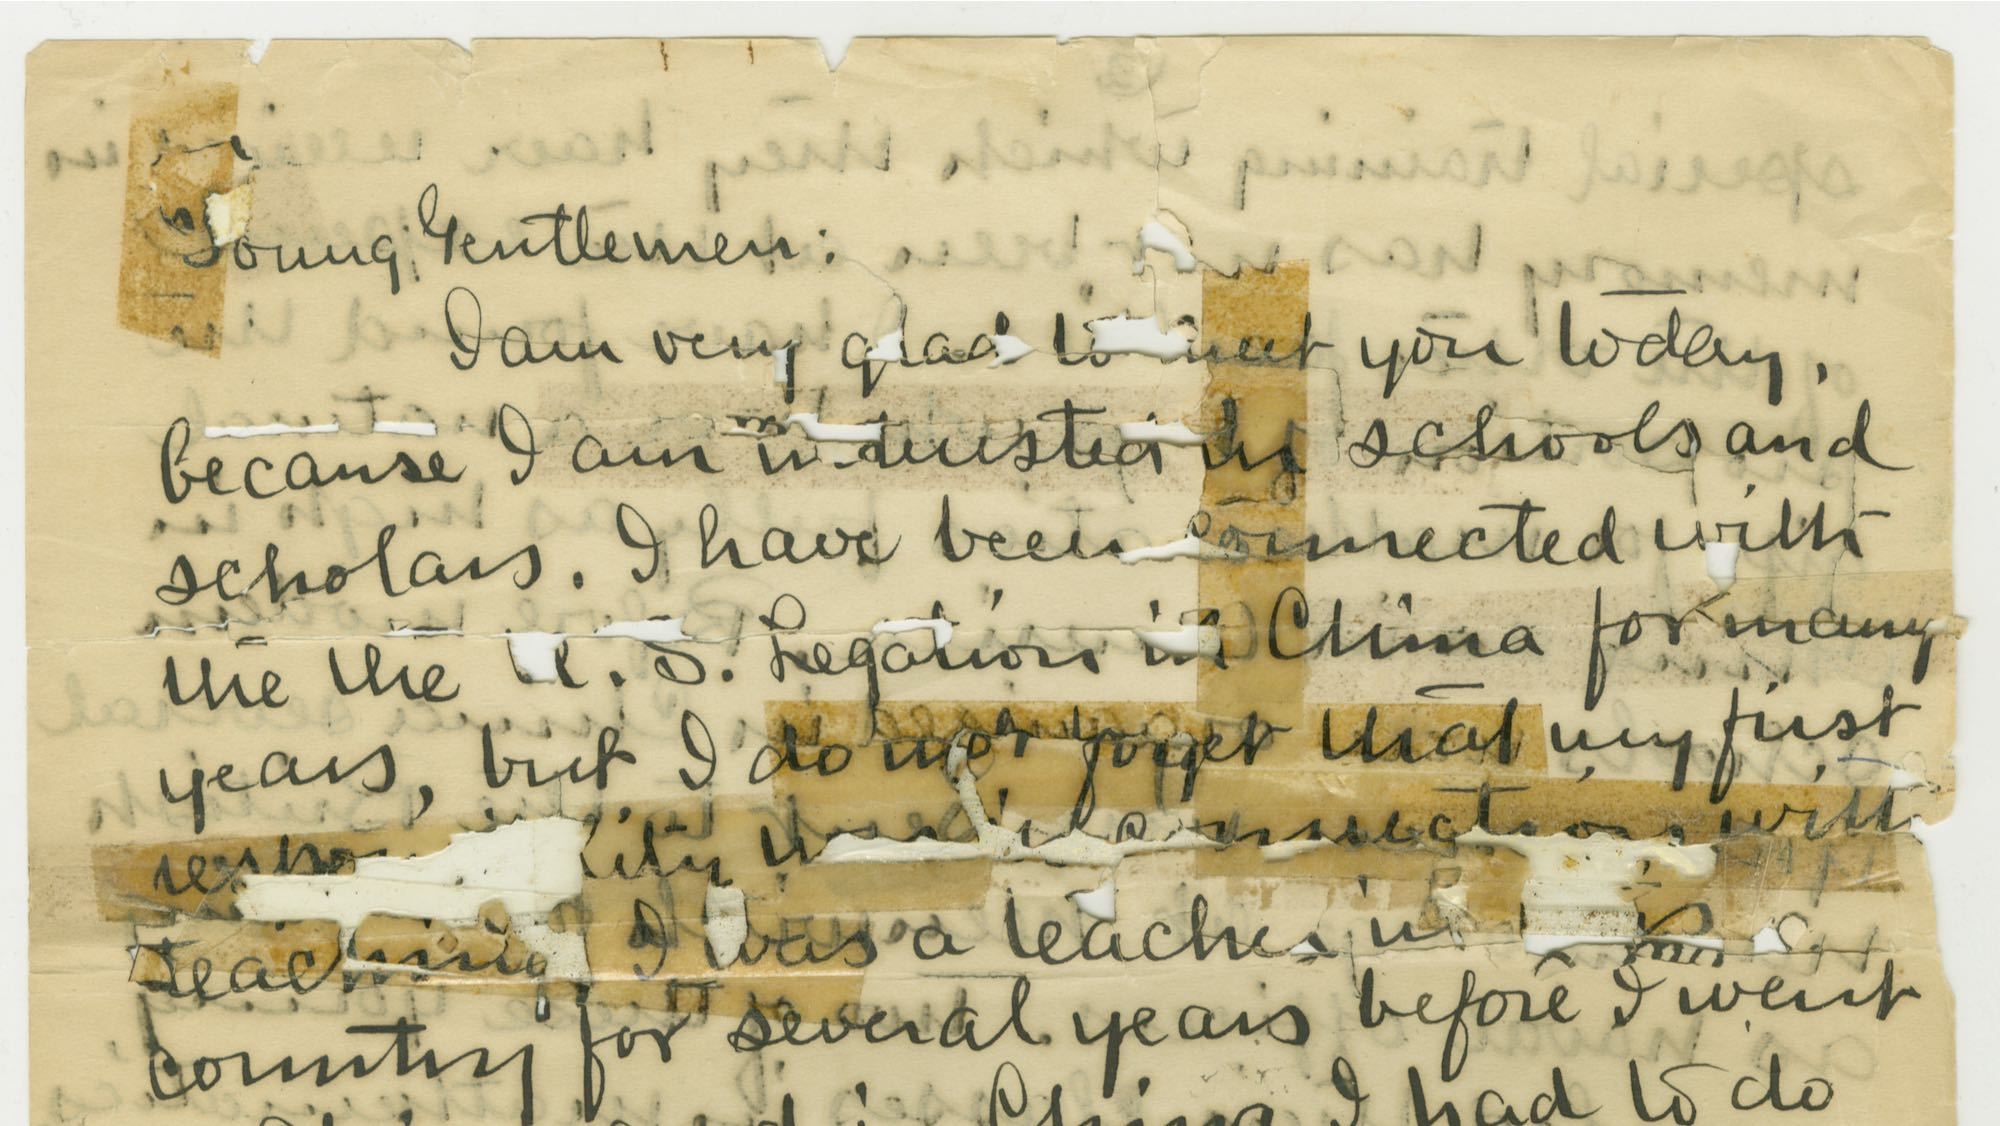 image of a manuscript letter from The Papers of Charles Daniel Tenney